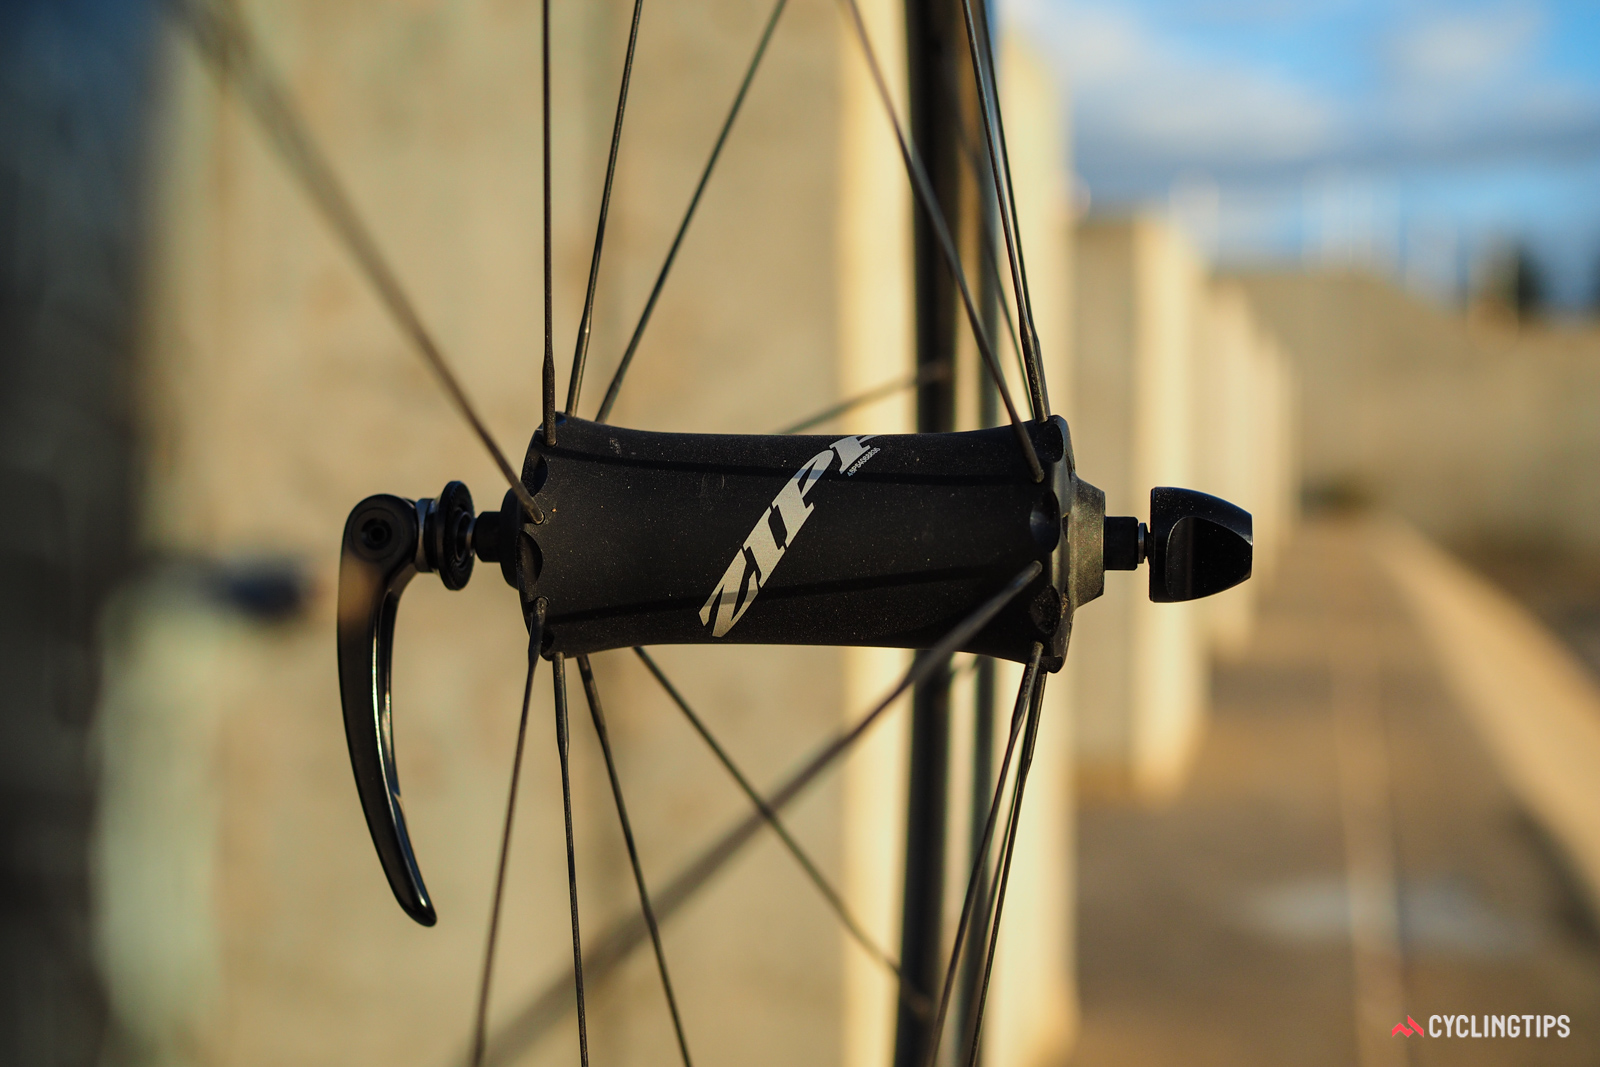 The Cognition front hub uses a notably sleeker shape.